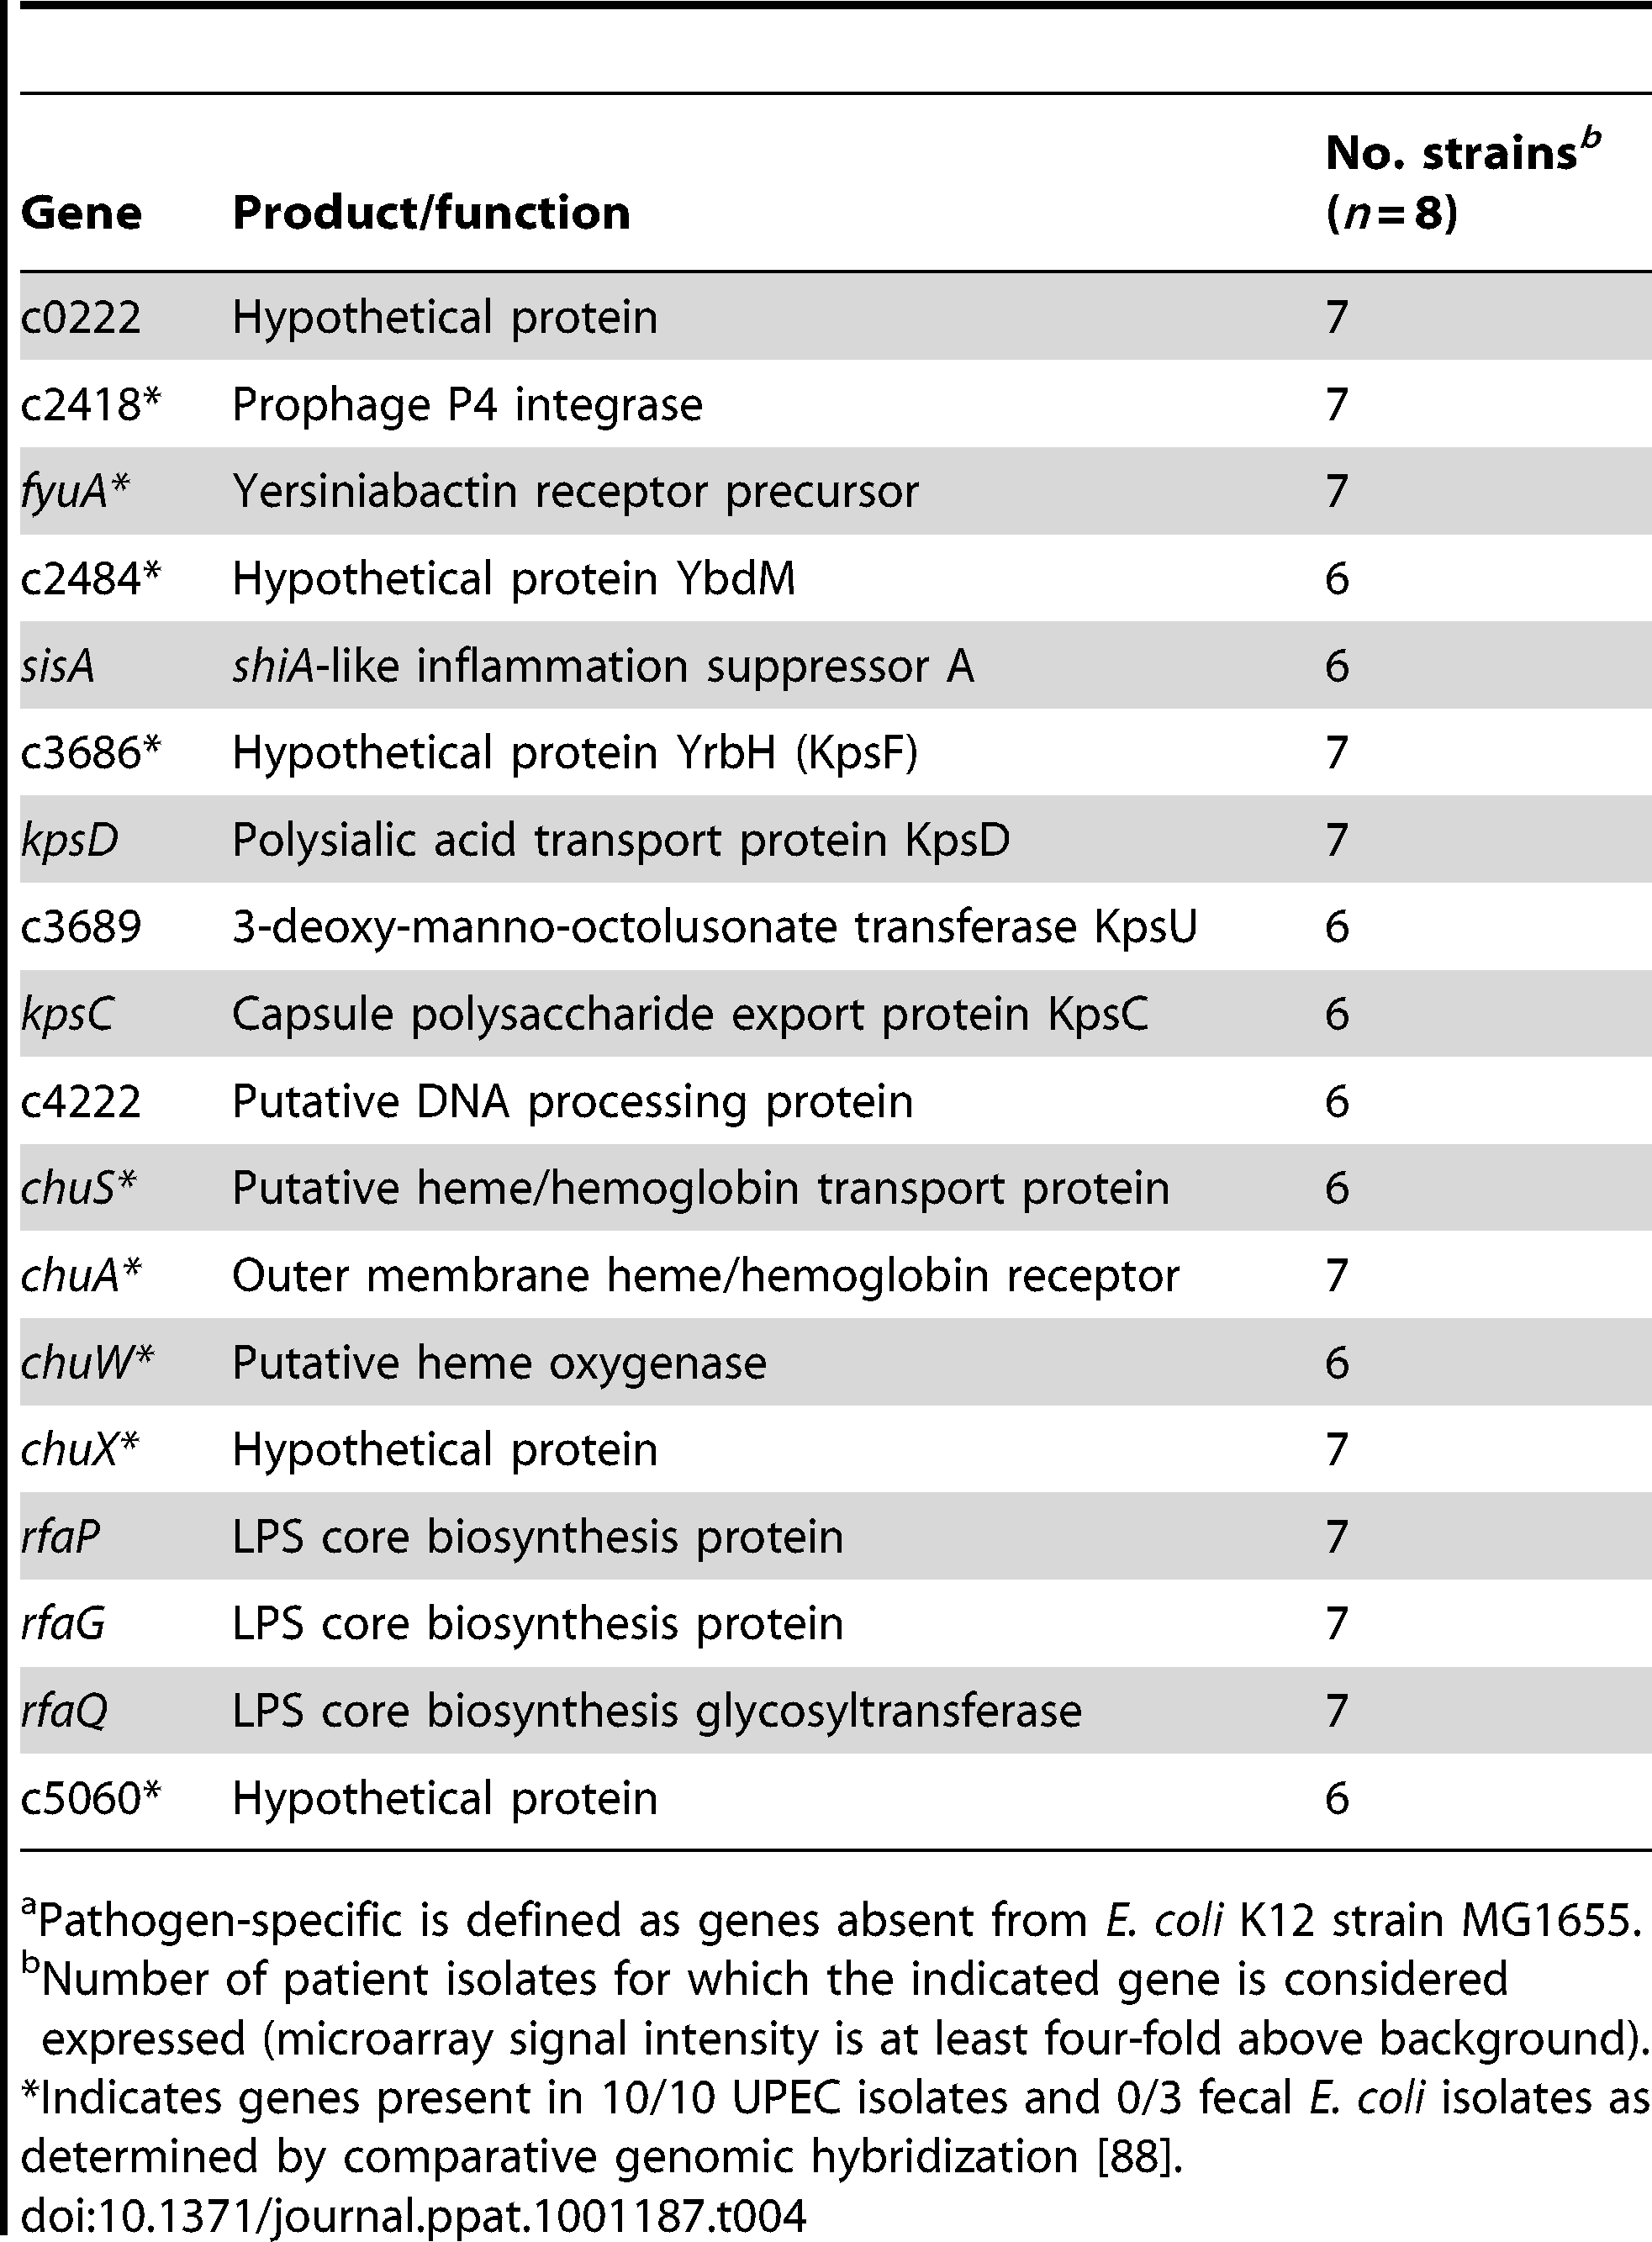 Pathogen-specific<em class=&quot;ref&quot;>a</em> genes expressed in the majority of urines from women with UTI.